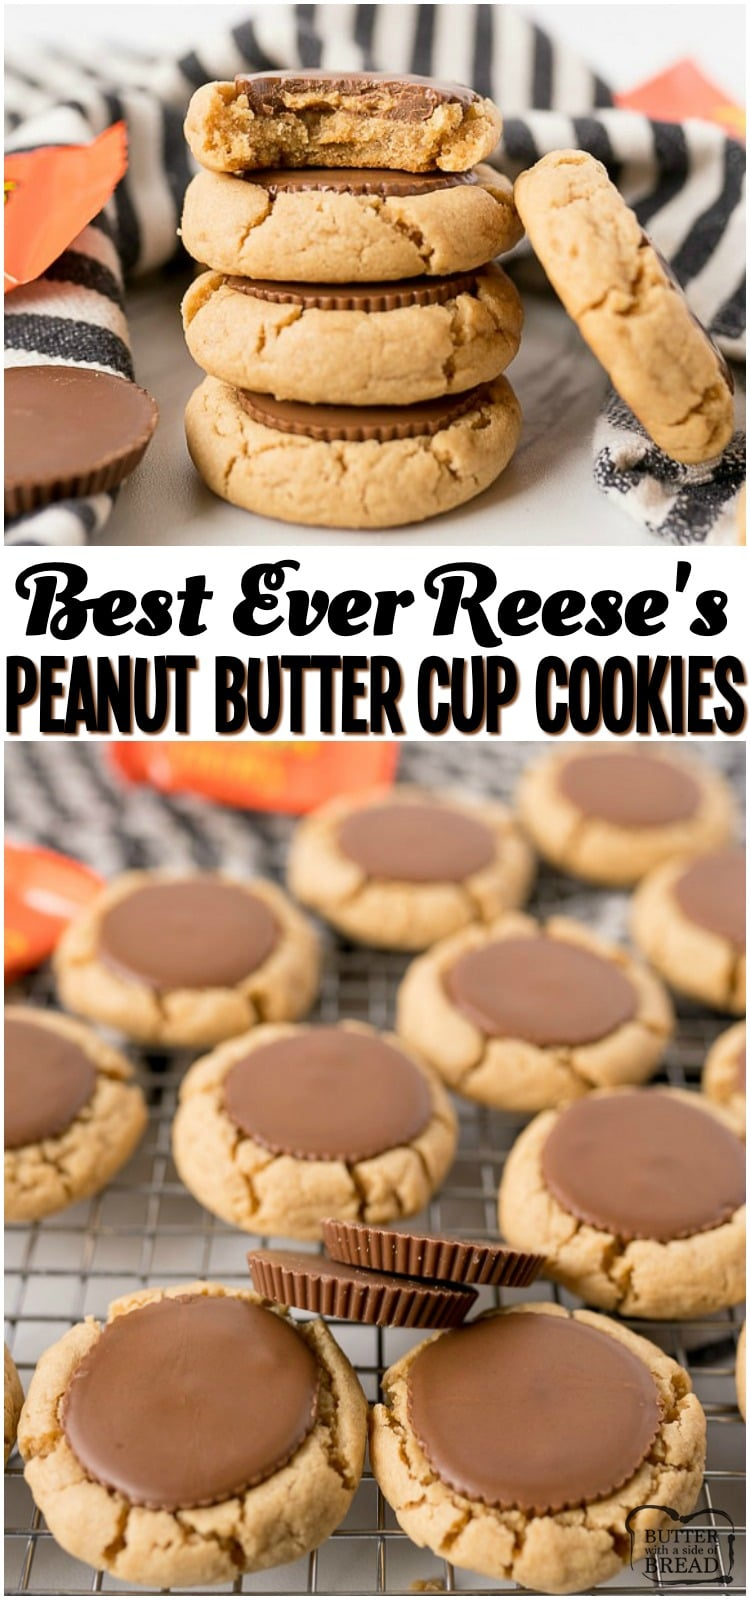 Reese's Peanut Butter Cup Cookies are a mega soft and chewy peanut butter cookie, baked and then topped with a Peanut Butter Cup straight out of the oven! Perfect peanut butter cookie for all Peanut Butter and Chocolate lovers! #reeses #peanutbutter #cookies #peatnutbuttercup #dessert #chocolate #dessert #baking #recipe from BUTTER WITH A SIDE OF BREAD